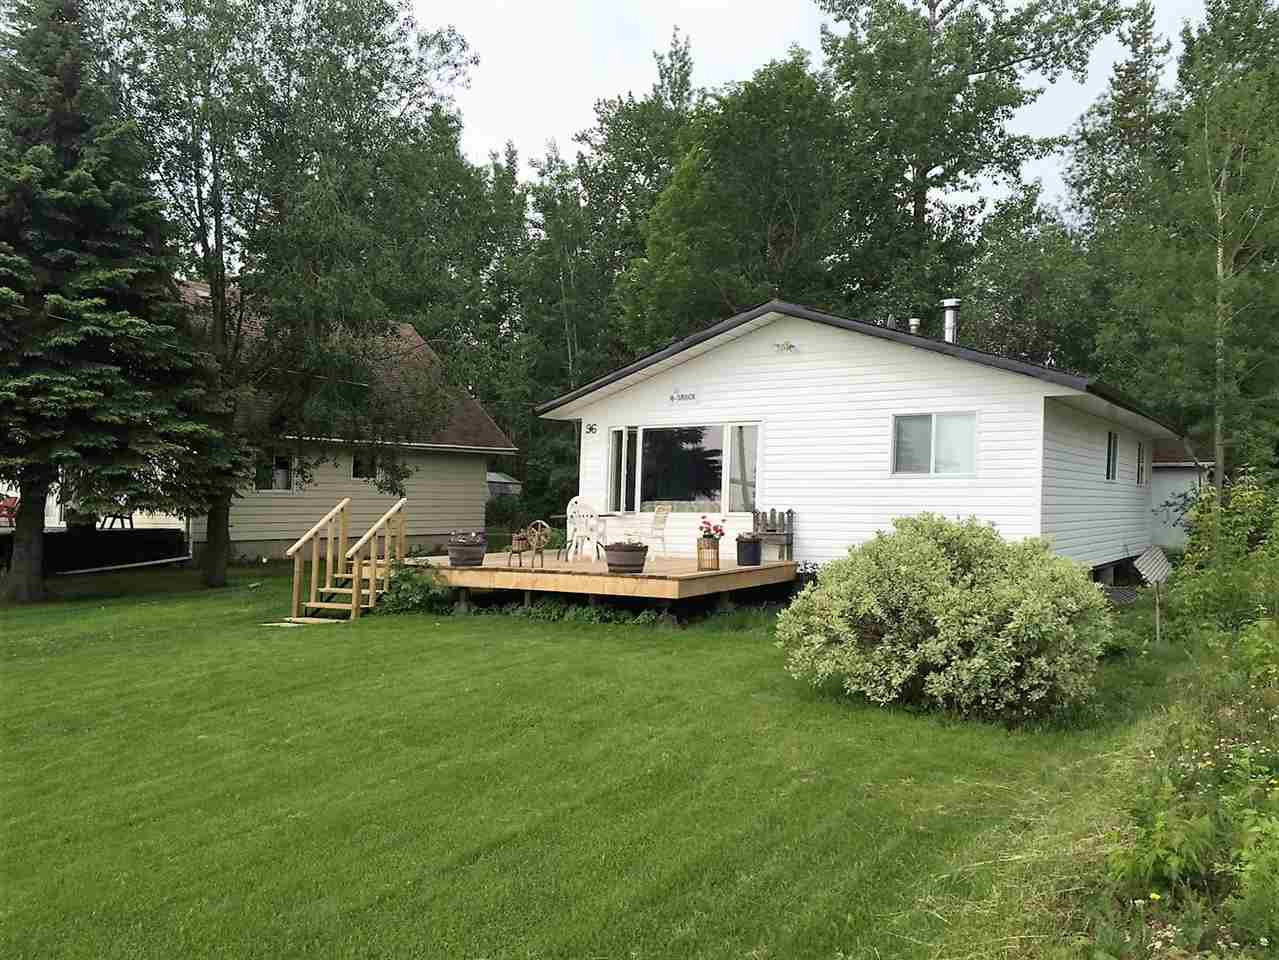 #96 Grandview. Great location & panoramic open view of Pigeon Lake. Seasonal 3 bdrm cabin appr. 864 sqft with open plan, w/b stove, 4 pc bath, newer front deck and private back yard with firepit! Good size lot 60'x150' right across from the boat launch to put your dock or boat lift out front & kids will enjoy the playground & gazebo. Services include power, natural gas, drilled well and holding tank. Affordable price for an ideal retreat.